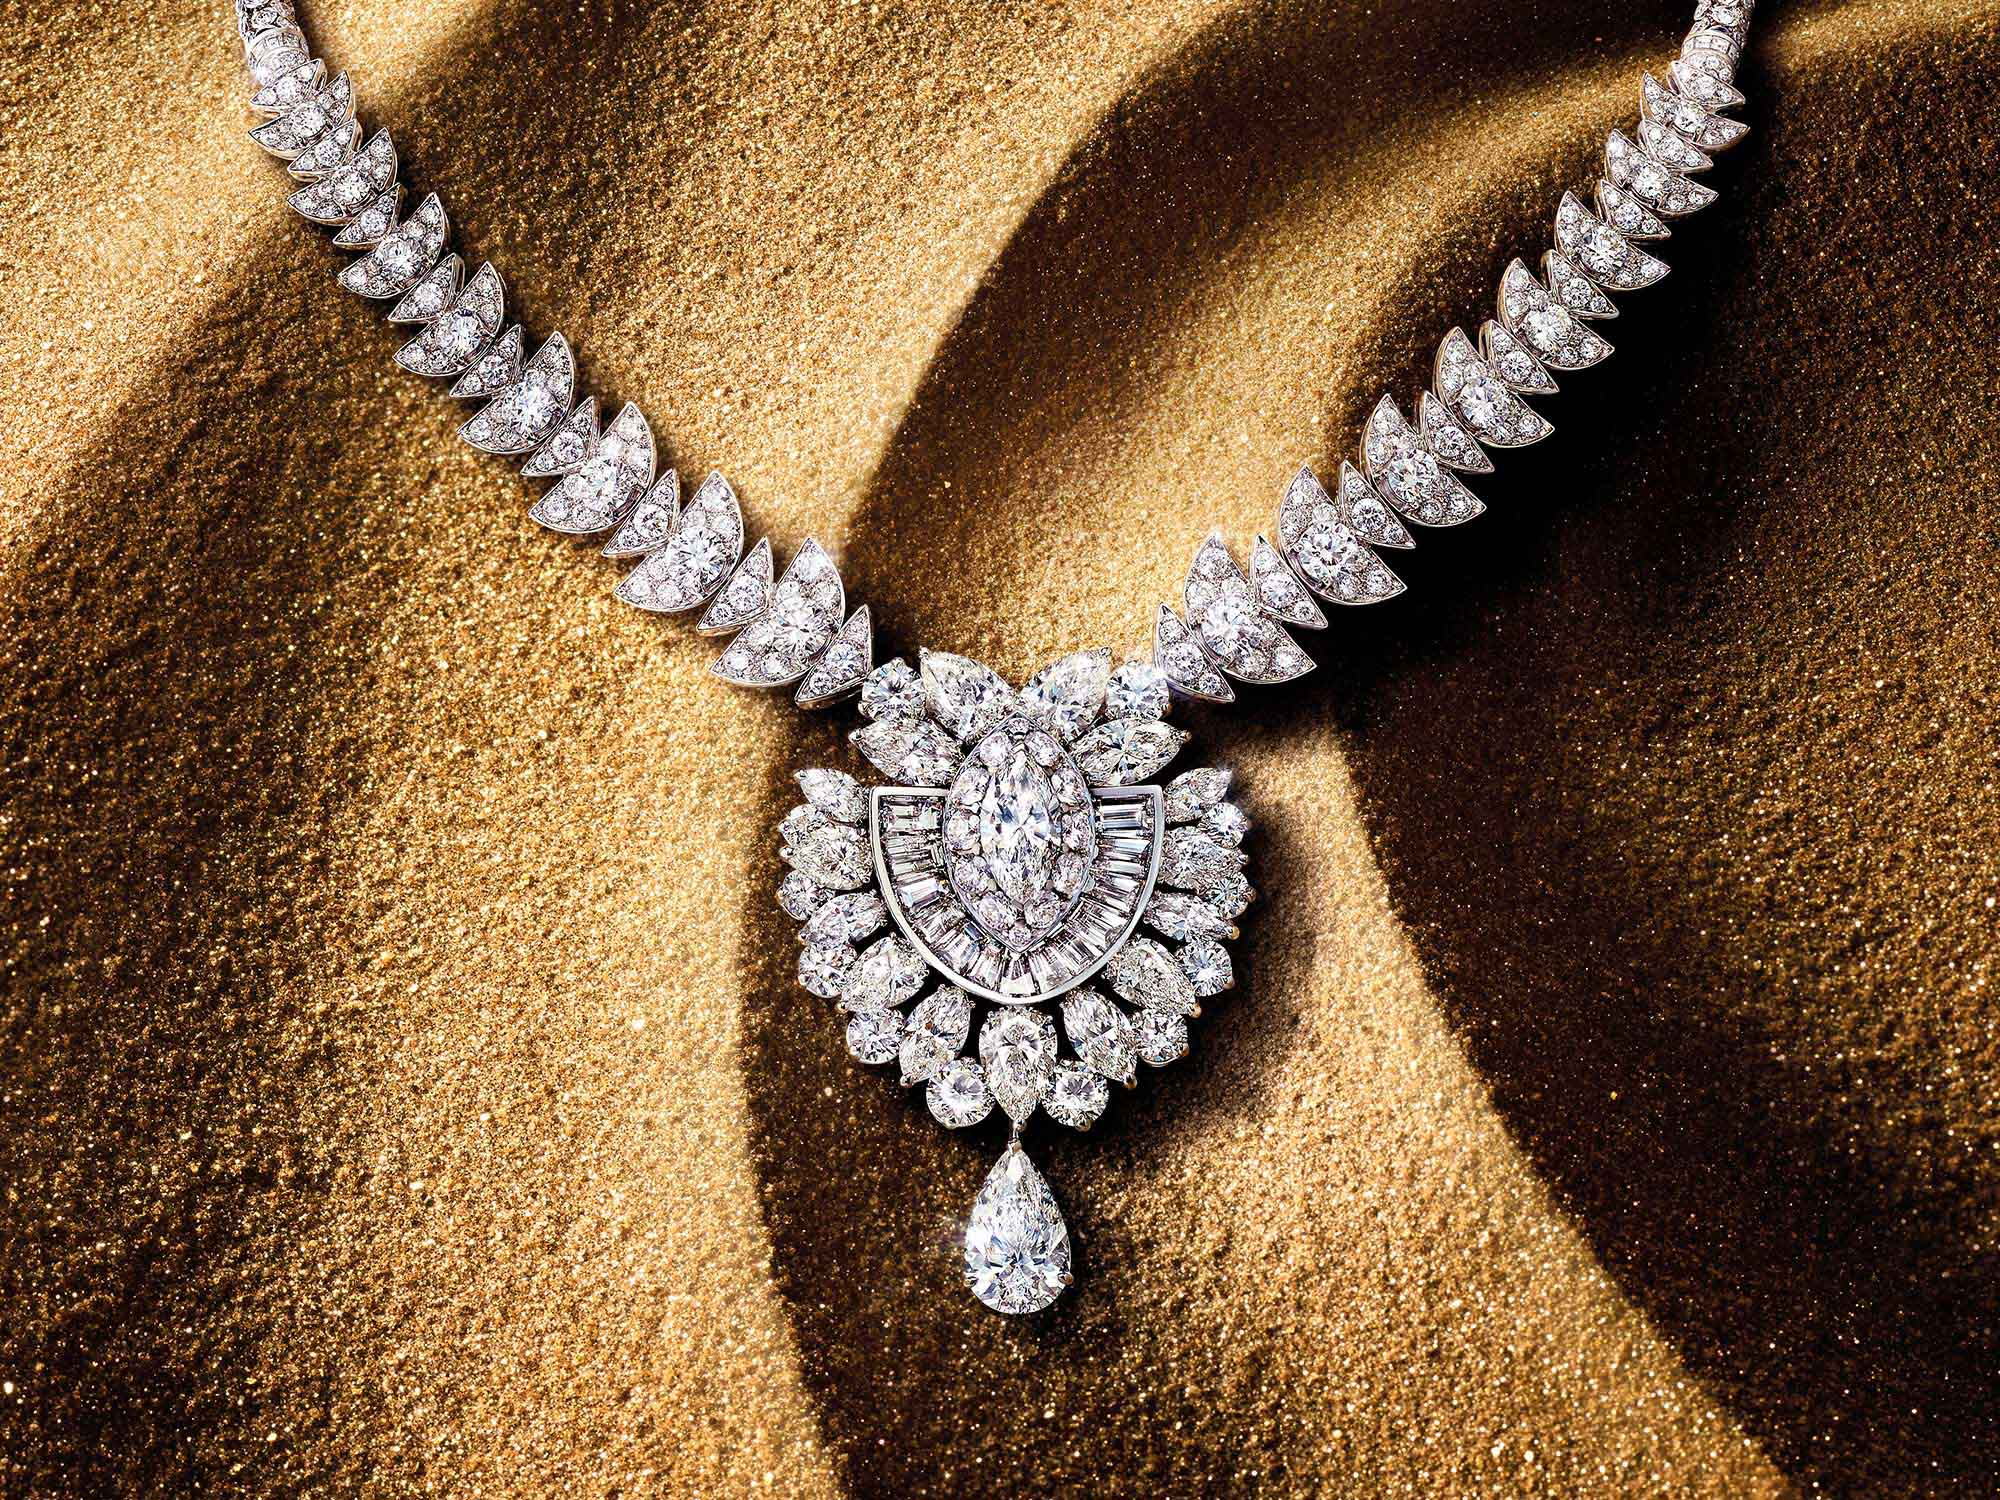 The Graff Night Moon diamond high jewellery necklace from the Tribal jewellery collection, on sand